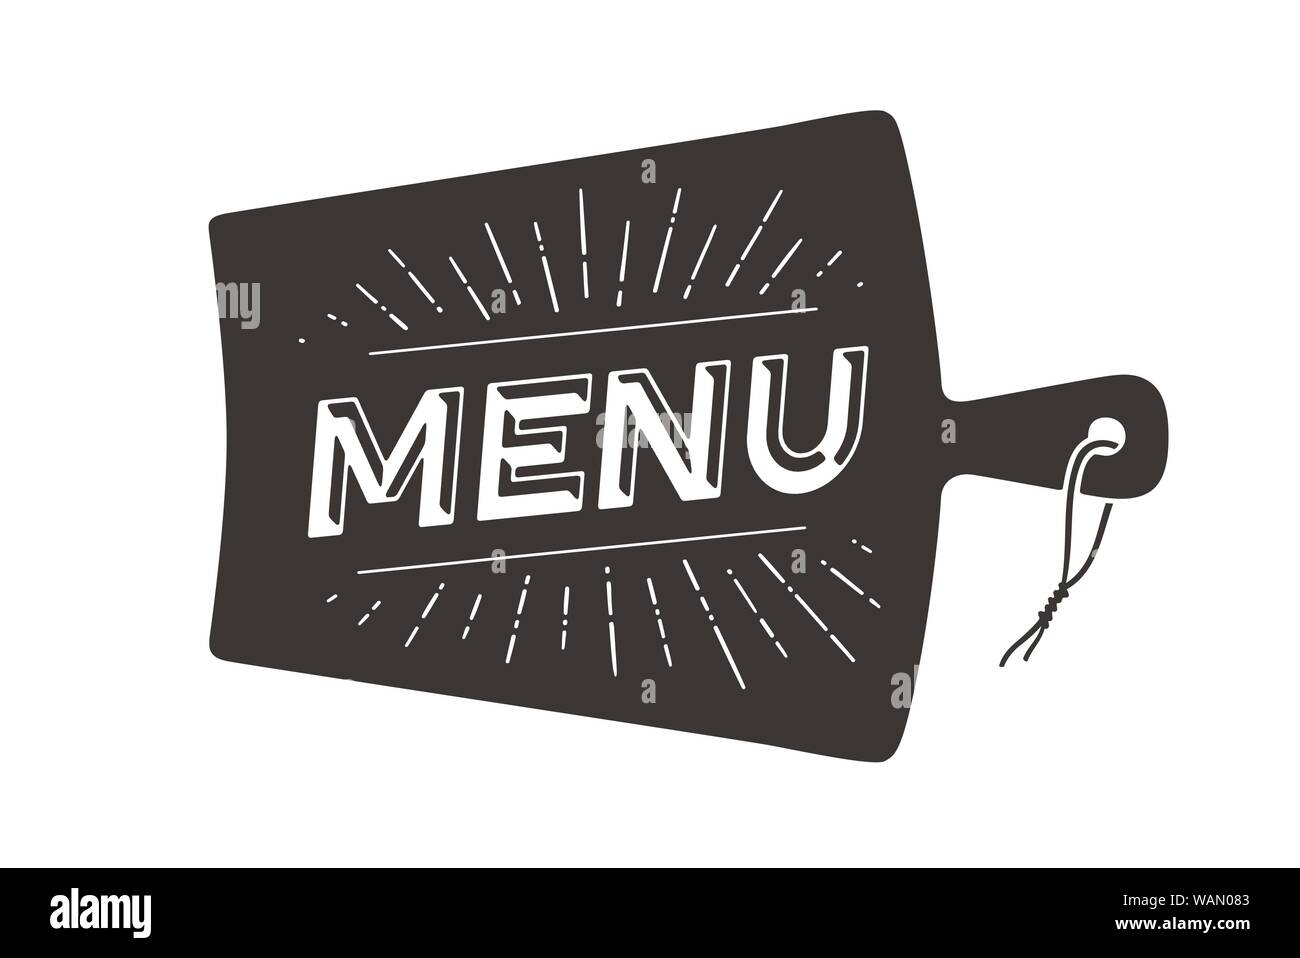 Menu Cutting Board Wall Decor Poster Sign Quote Stock Vector Image Art Alamy